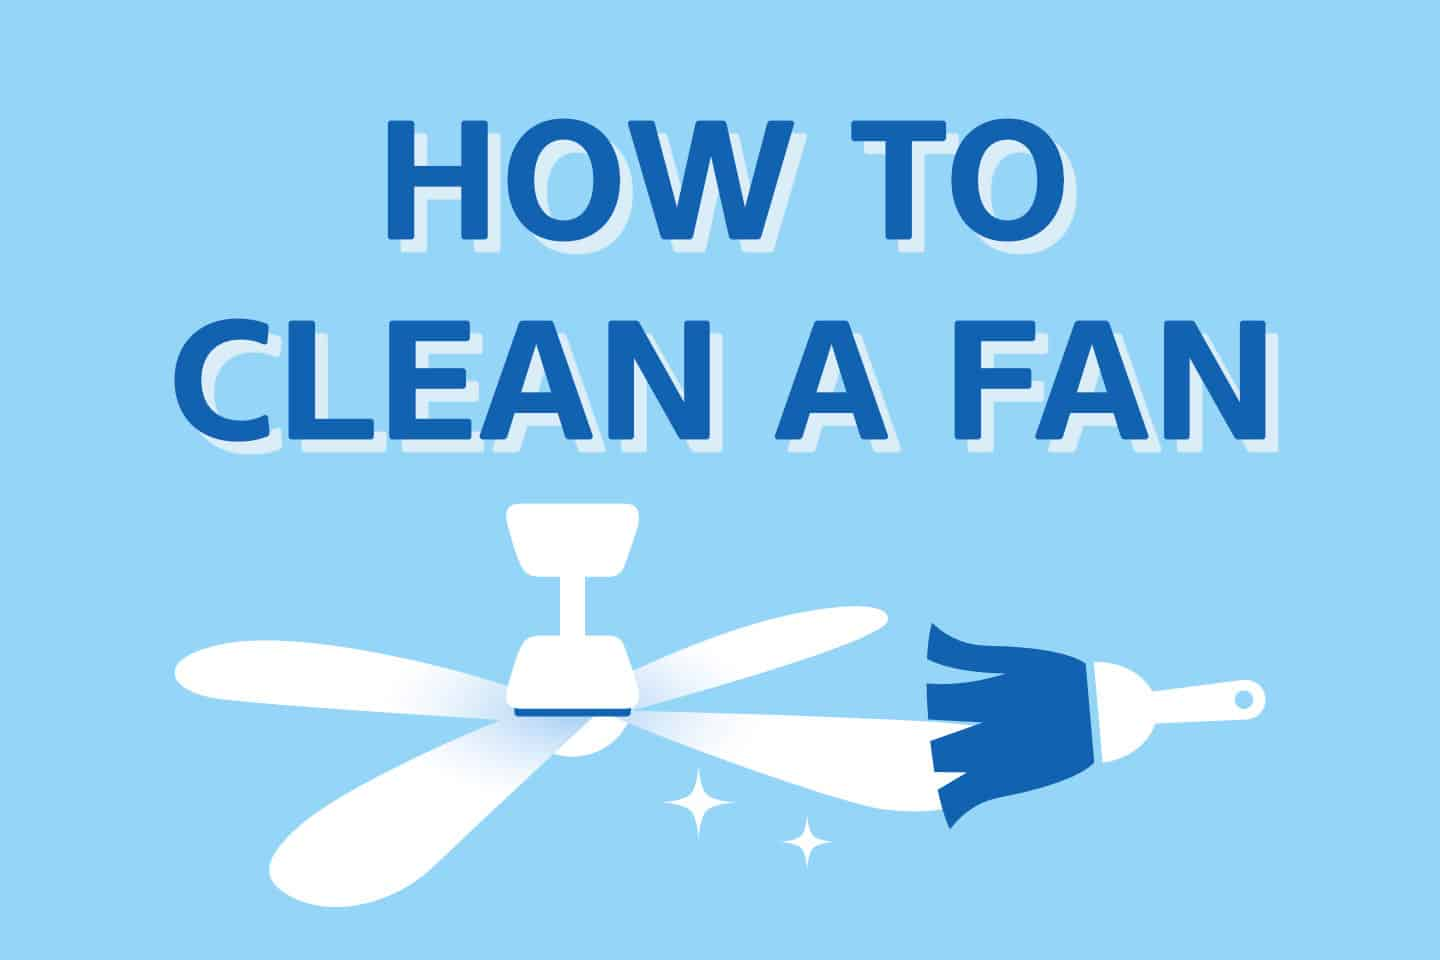 ❄️ How To Clean A Fan Thoroughly Within 7 Minutes